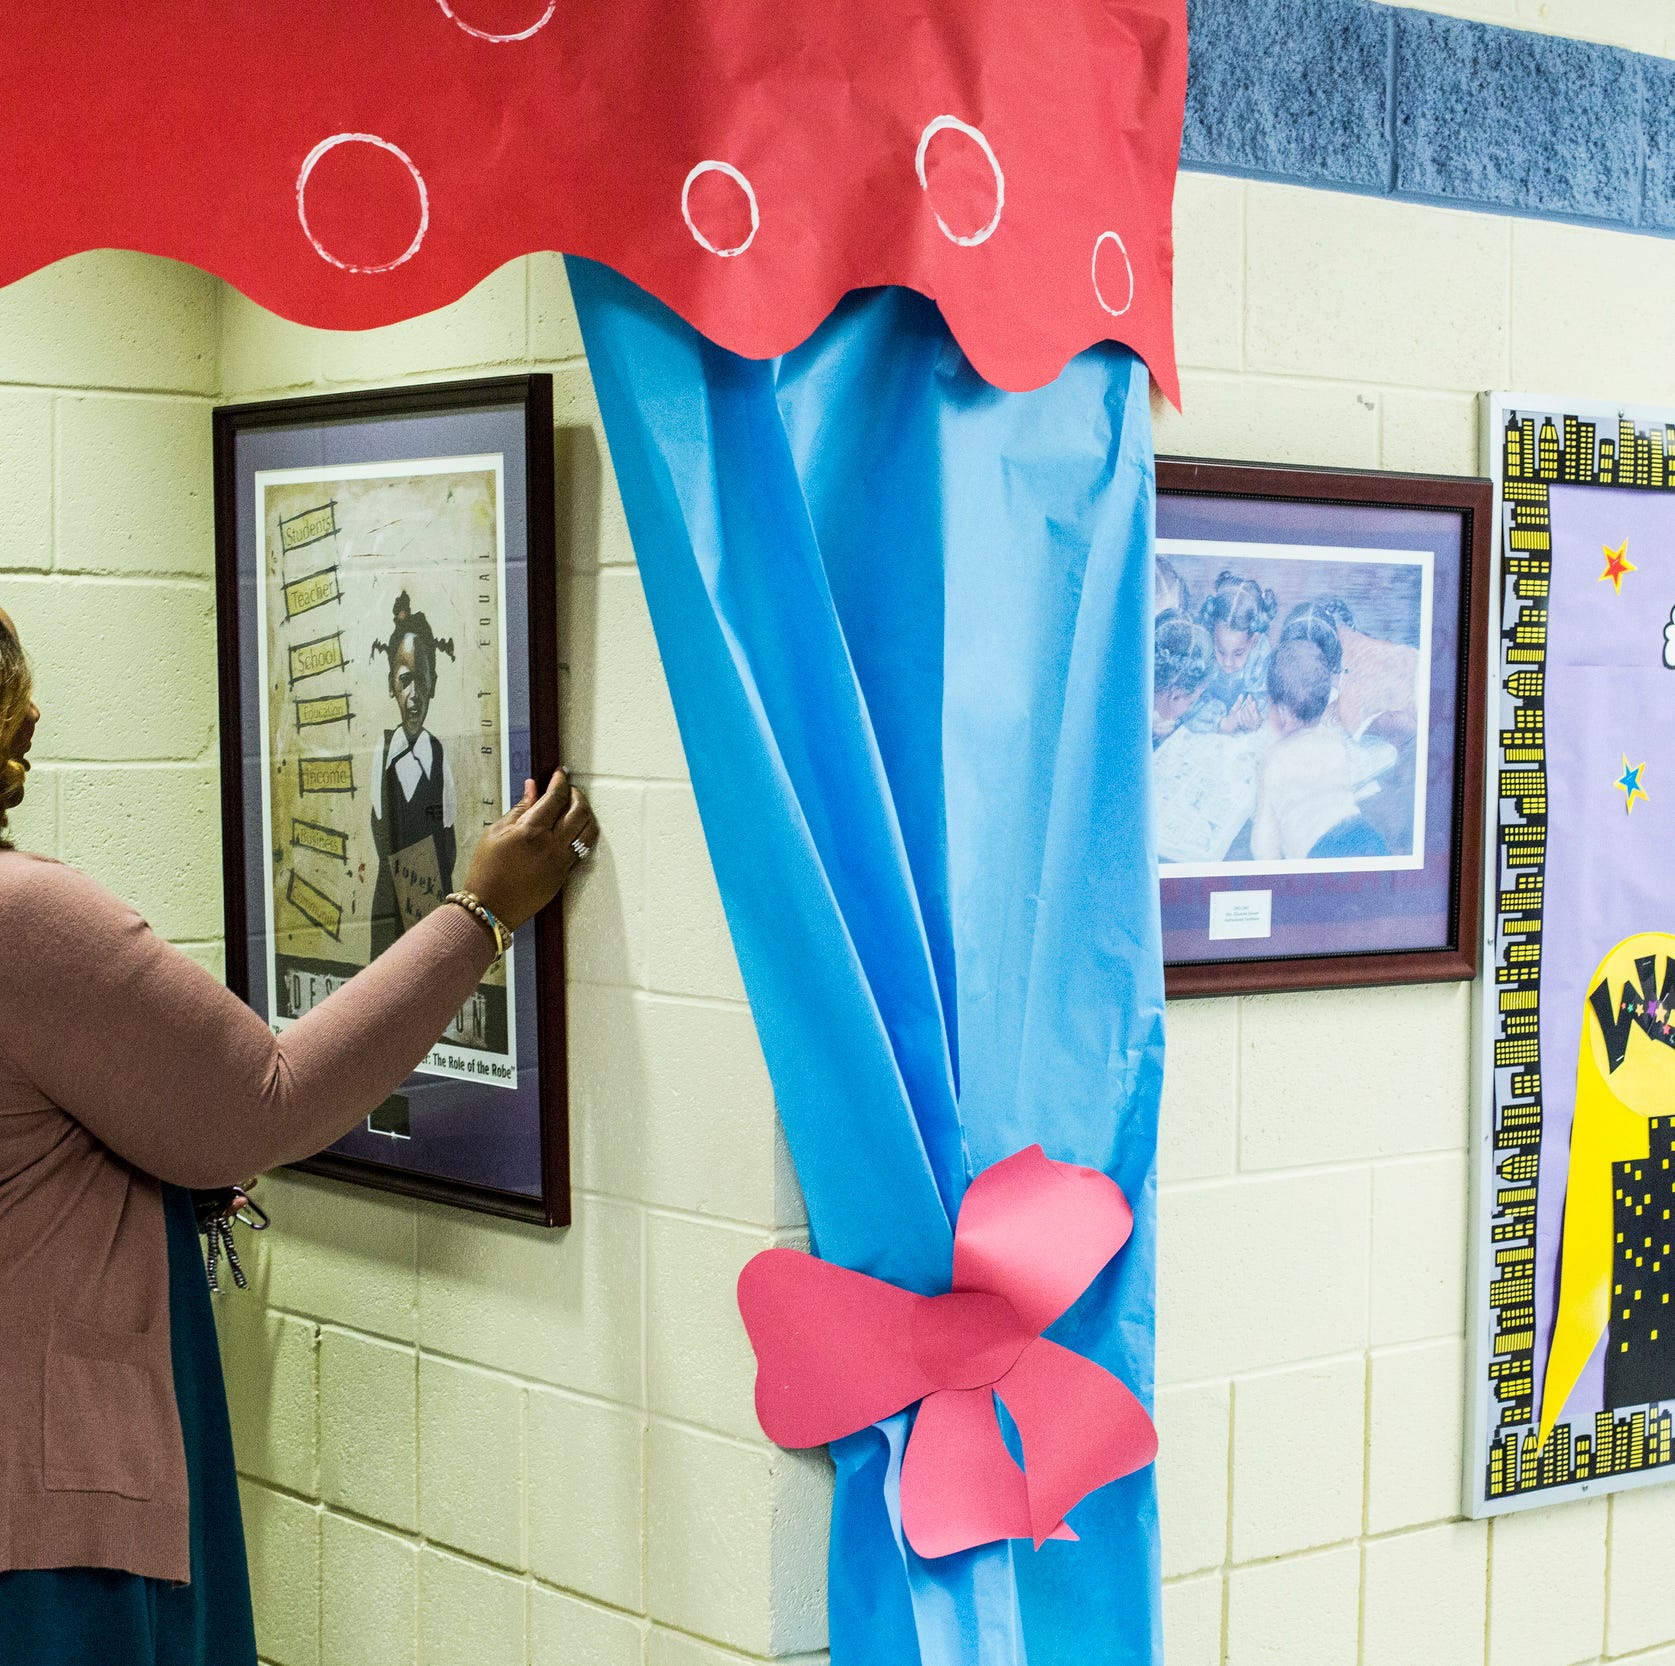 How did Robert R. Church save Memphis? We asked the kids of Robert R. Church Elementary